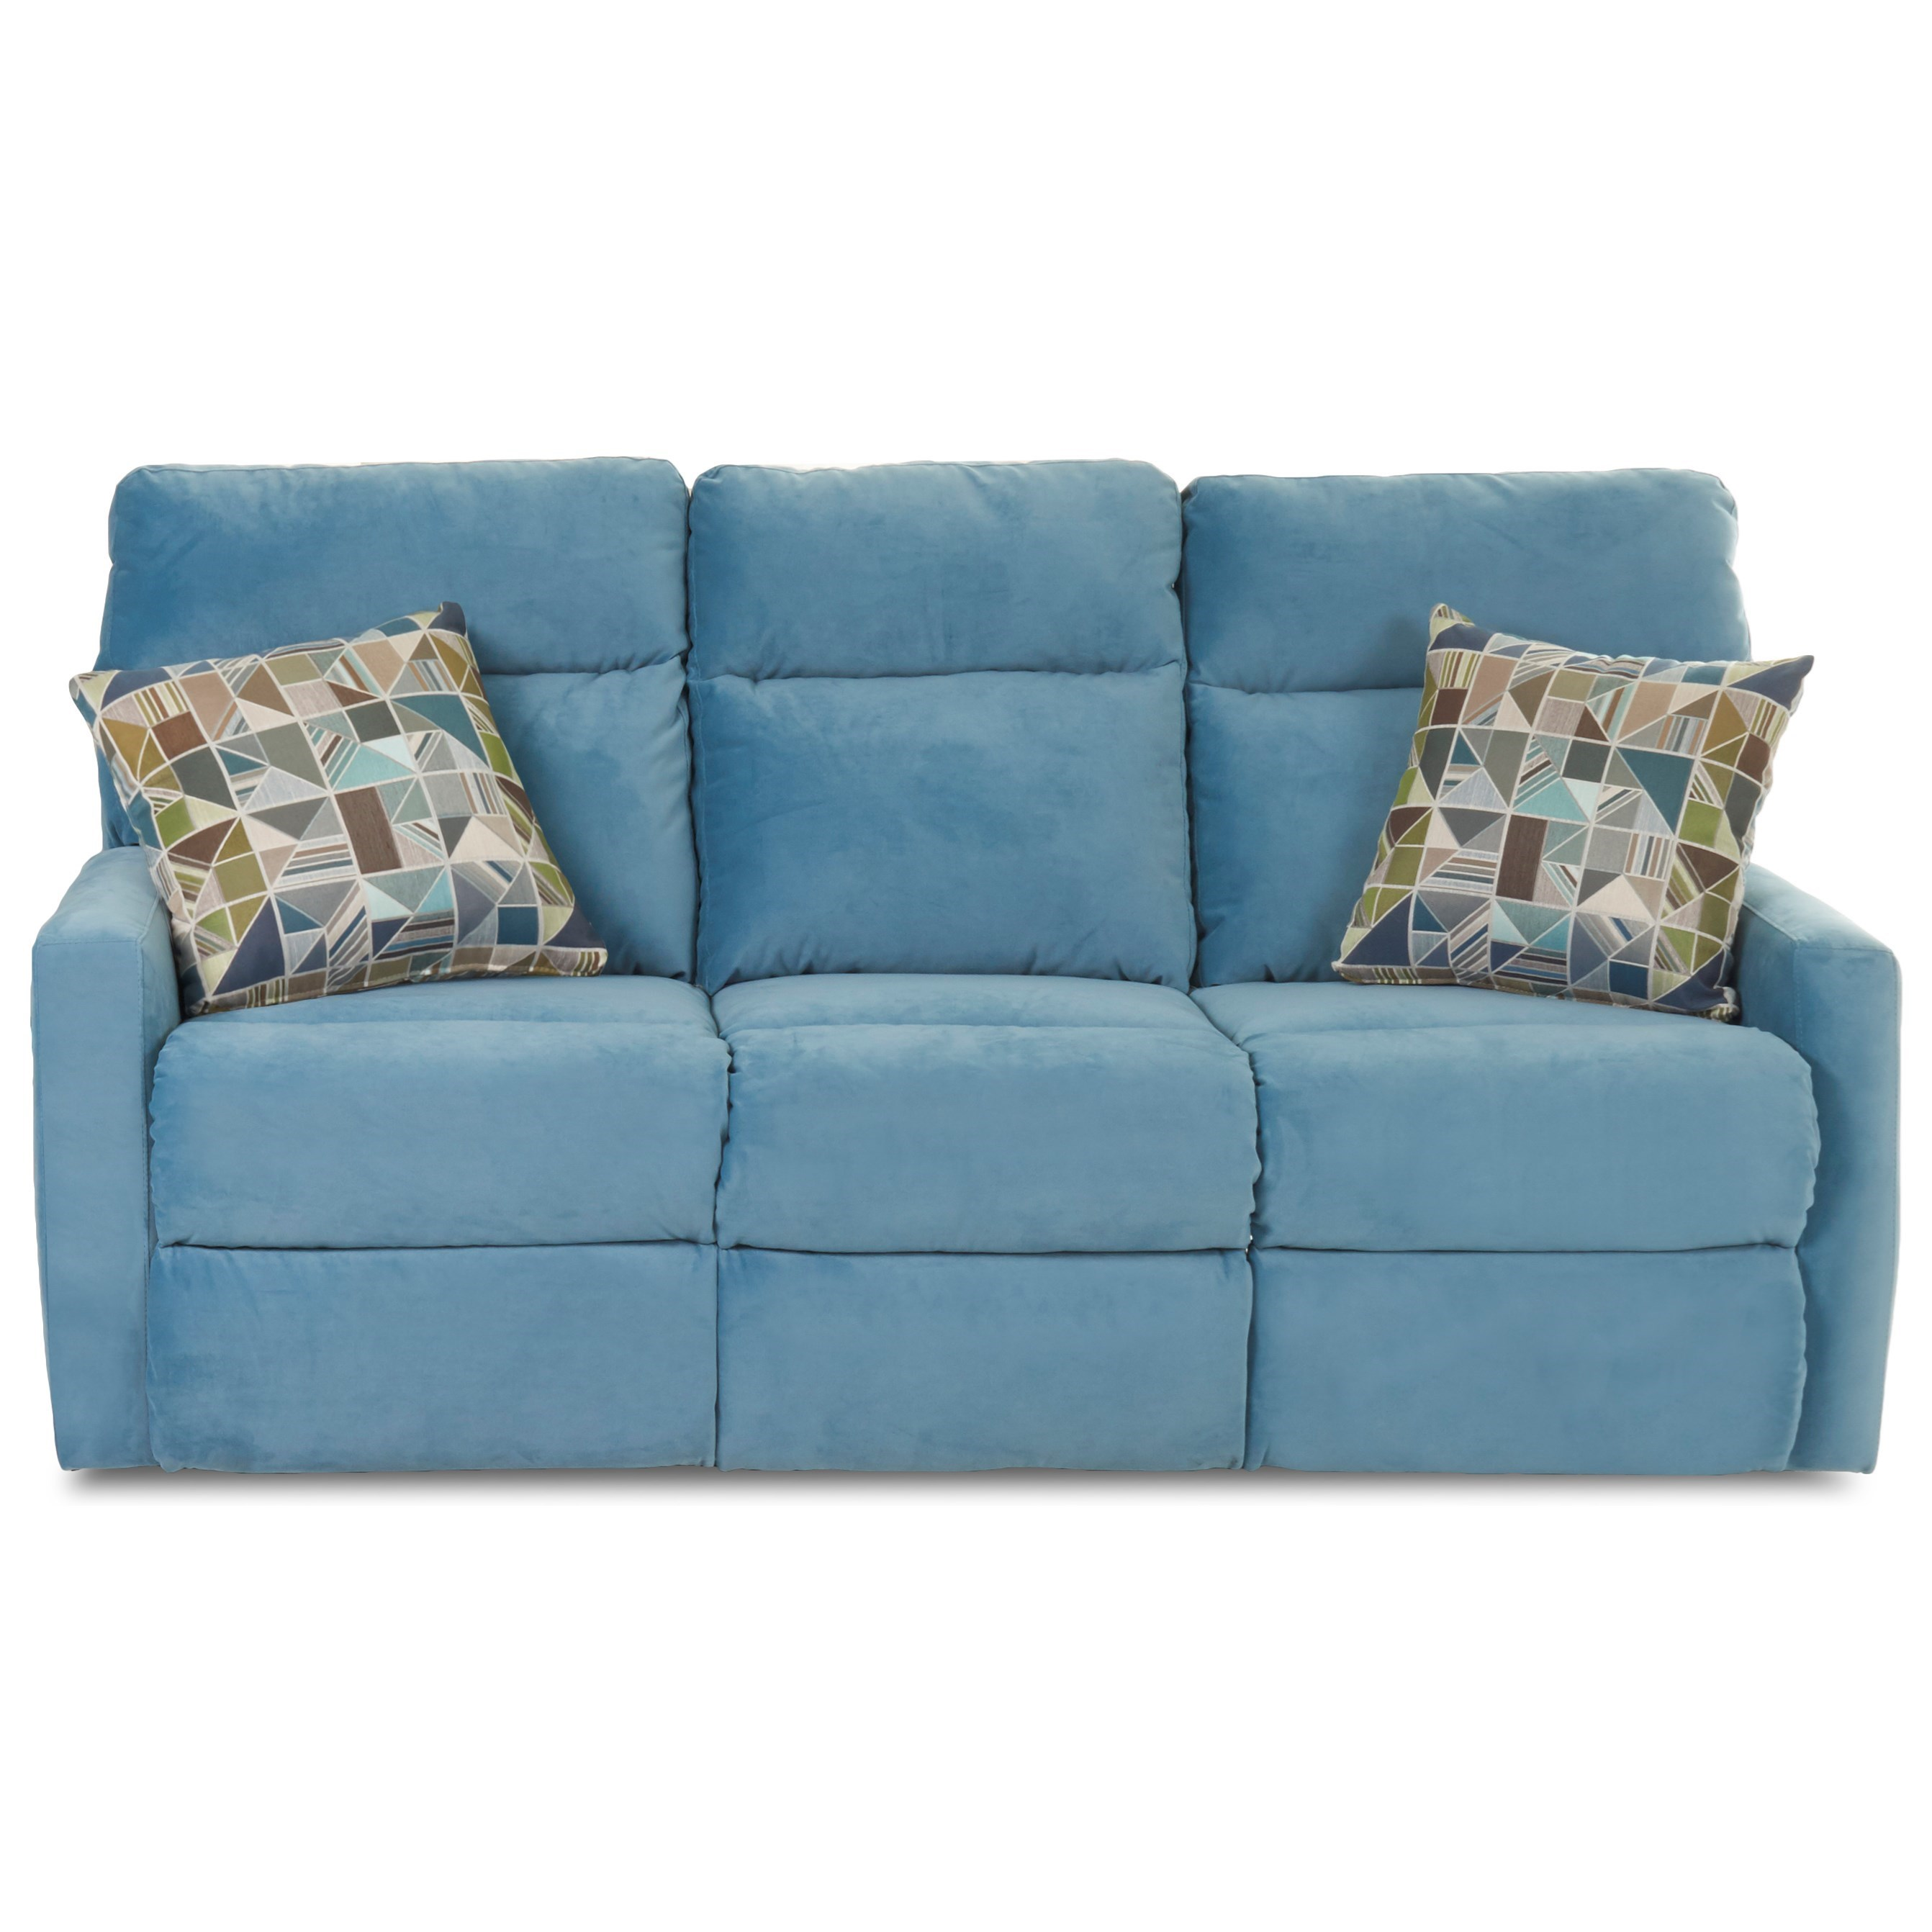 Daphne Reclining Sofa w/ Pillows by Klaussner at Northeast Factory Direct